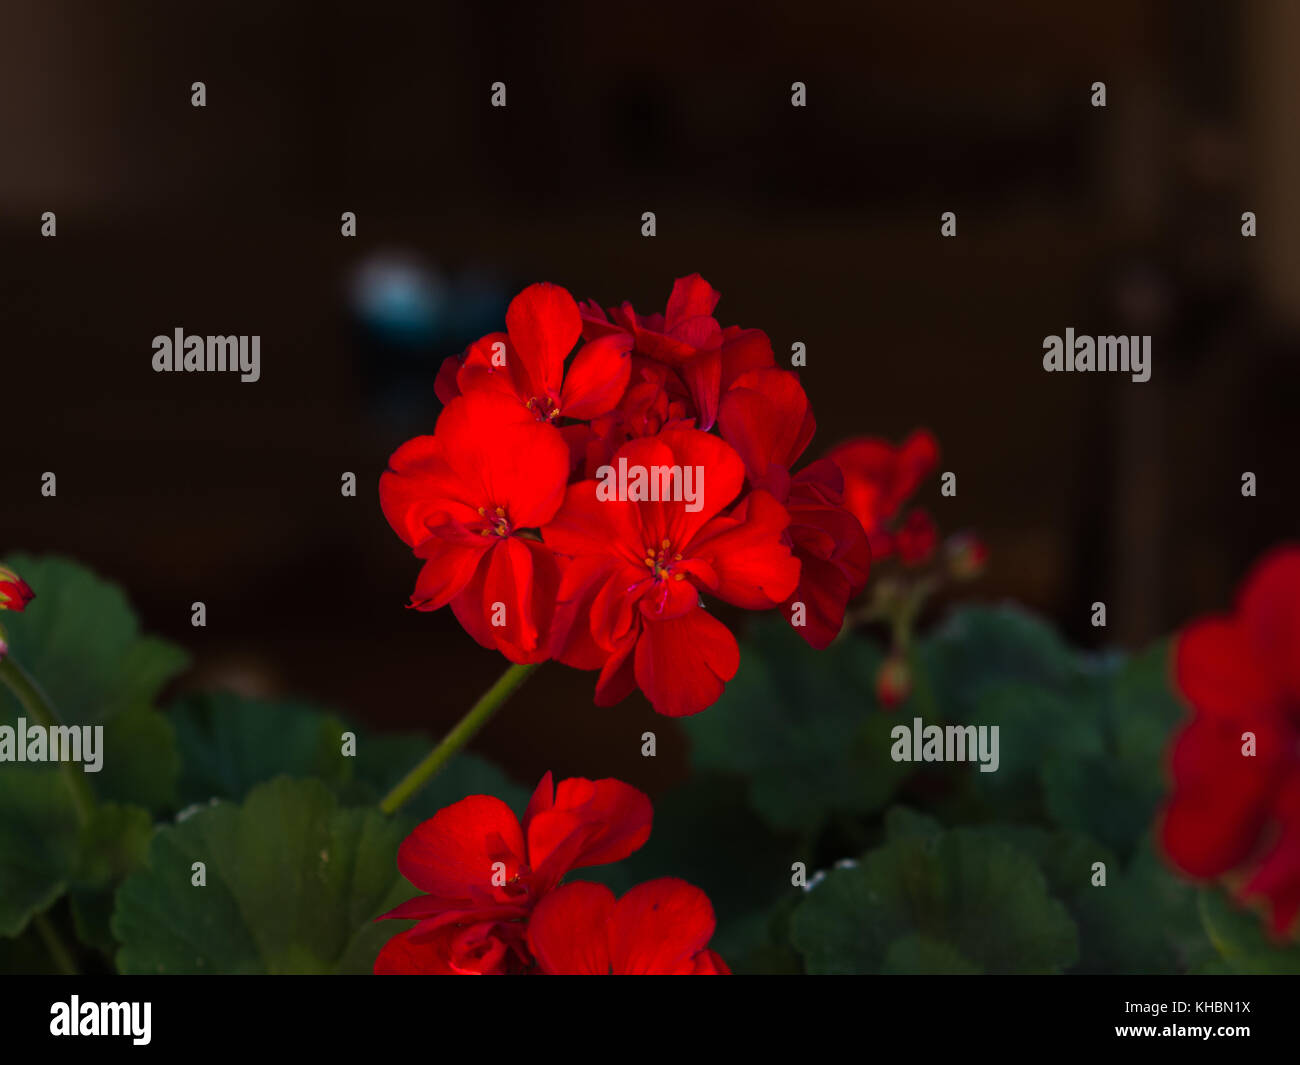 Red flowers on a hot day - Stock Image